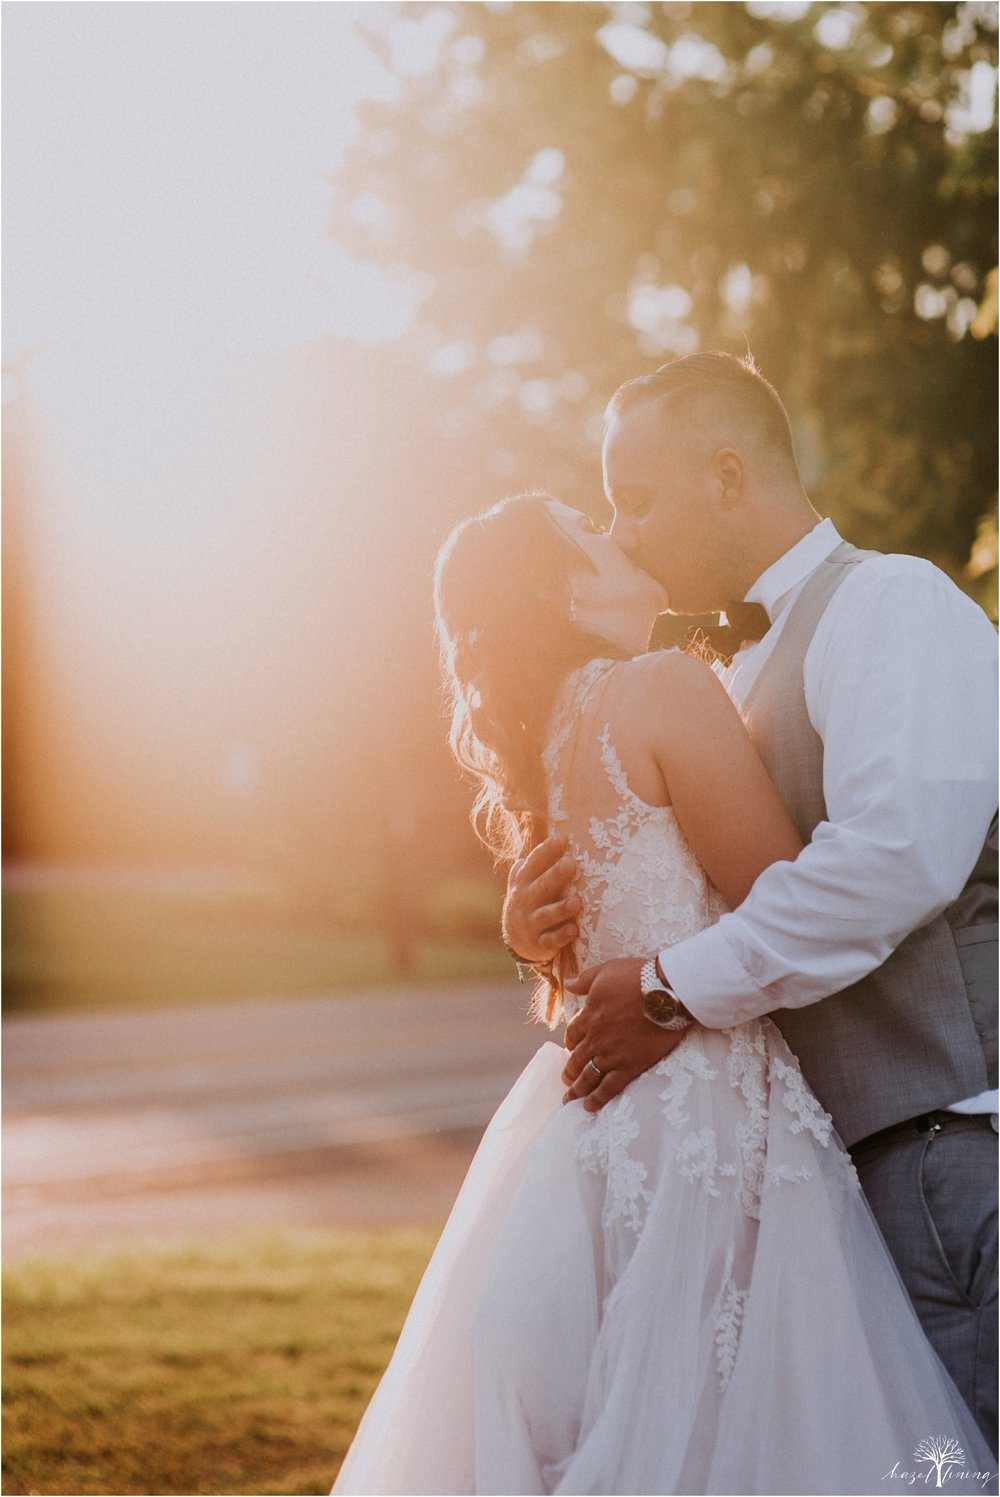 cassie-depinto-tyler-bodder-playwicki-farm-buck-hotel-featserville-trevose-pennsylvania-summer-outdoor-wedding-hazel-lining-travel-wedding-elopement-photography_0316.jpg